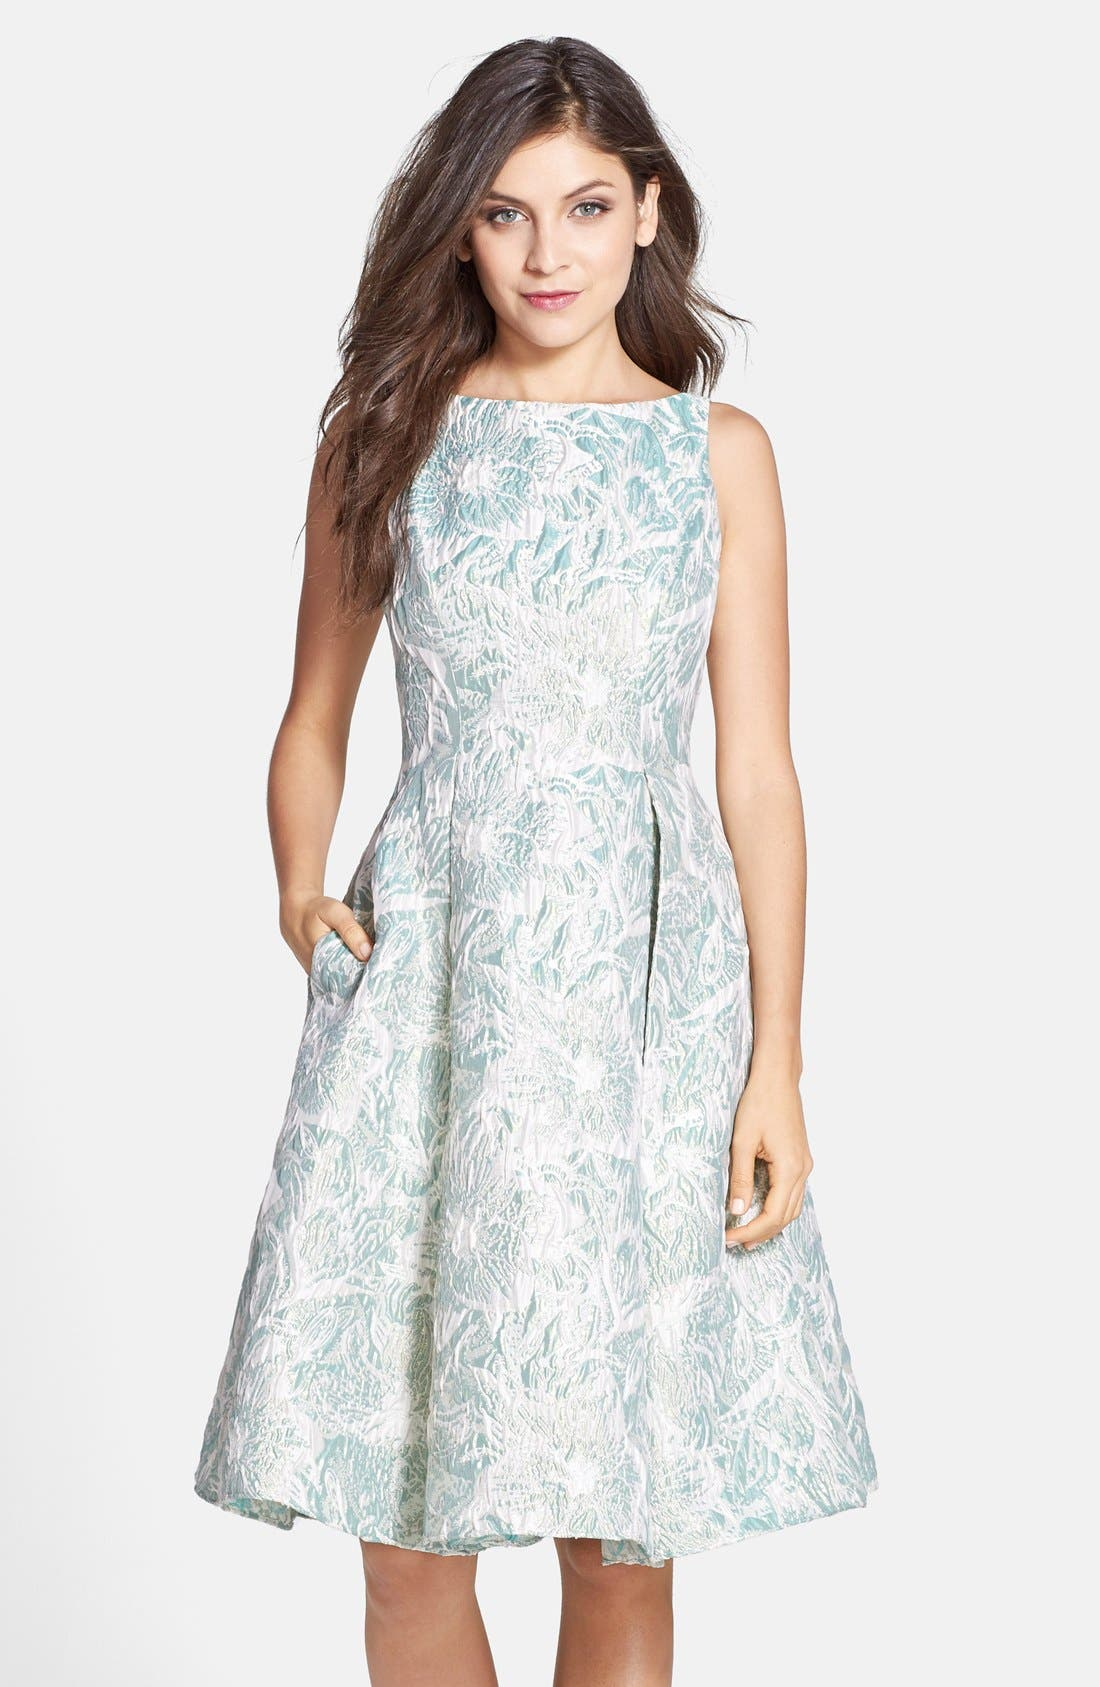 Main Image - Adrianna Papell Metallic Floral Jacquard Tea Length Fit & Flare Dress